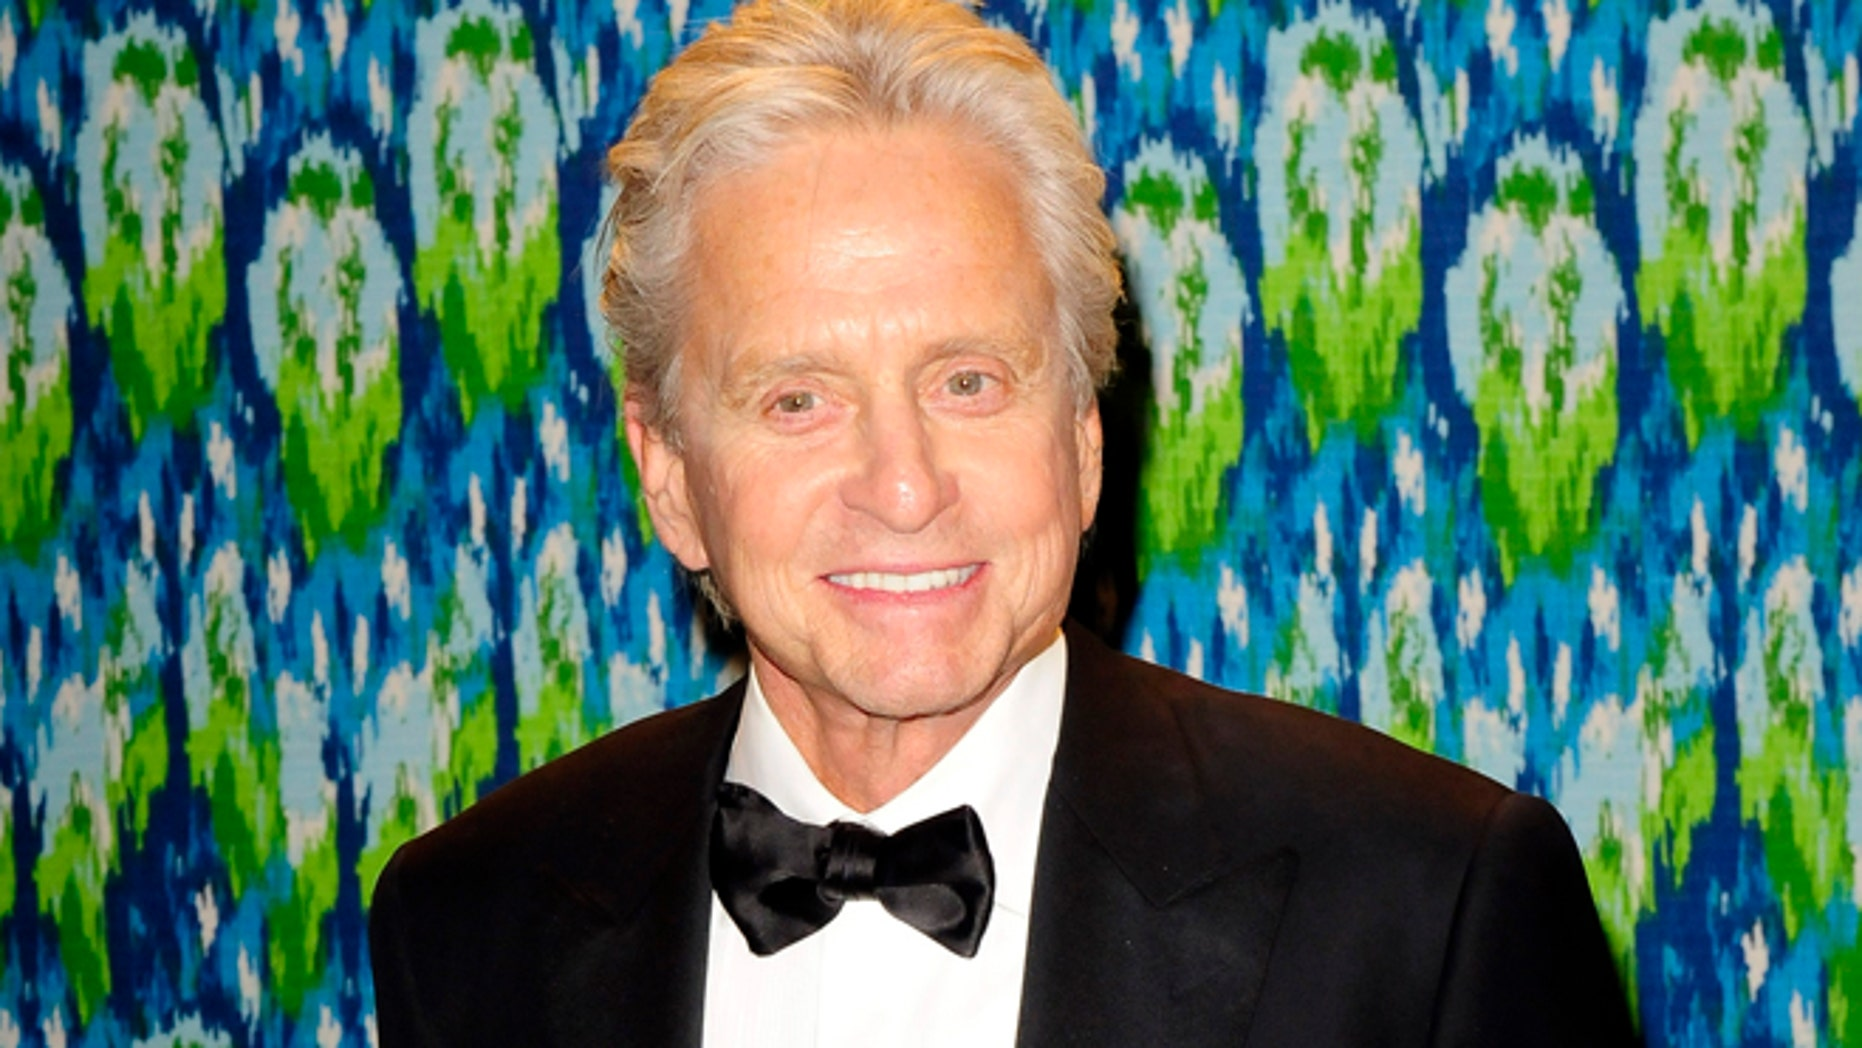 Winner of the Best Actor in a Mini-Series or TV Movie award Michael Douglas arrives at the 65th Primetime Emmy Awards HBO after-party in West Hollywood September 22, 2013. REUTERS/Gus Ruelas (UNITED STATES - Tags: ENTERTAINMENT) - RTX13WKH